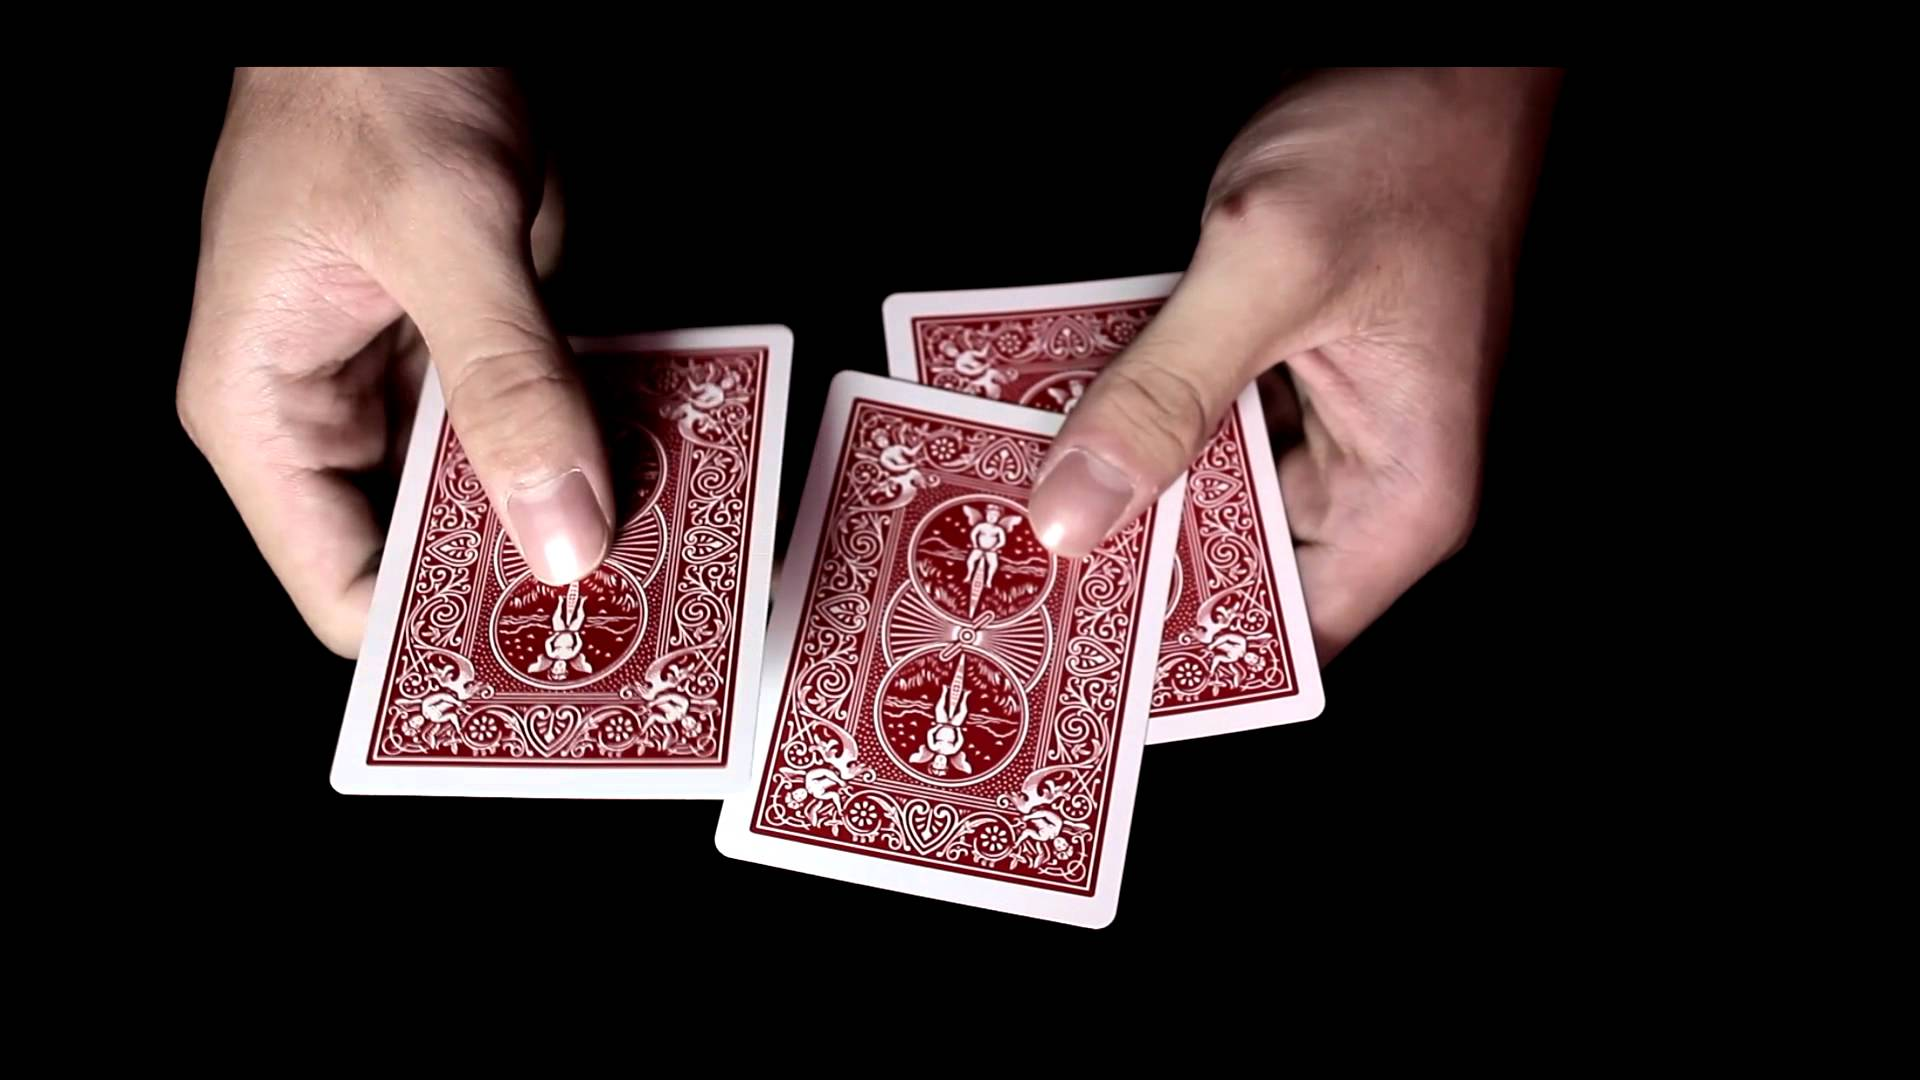 The Bend 3 Card monte trick